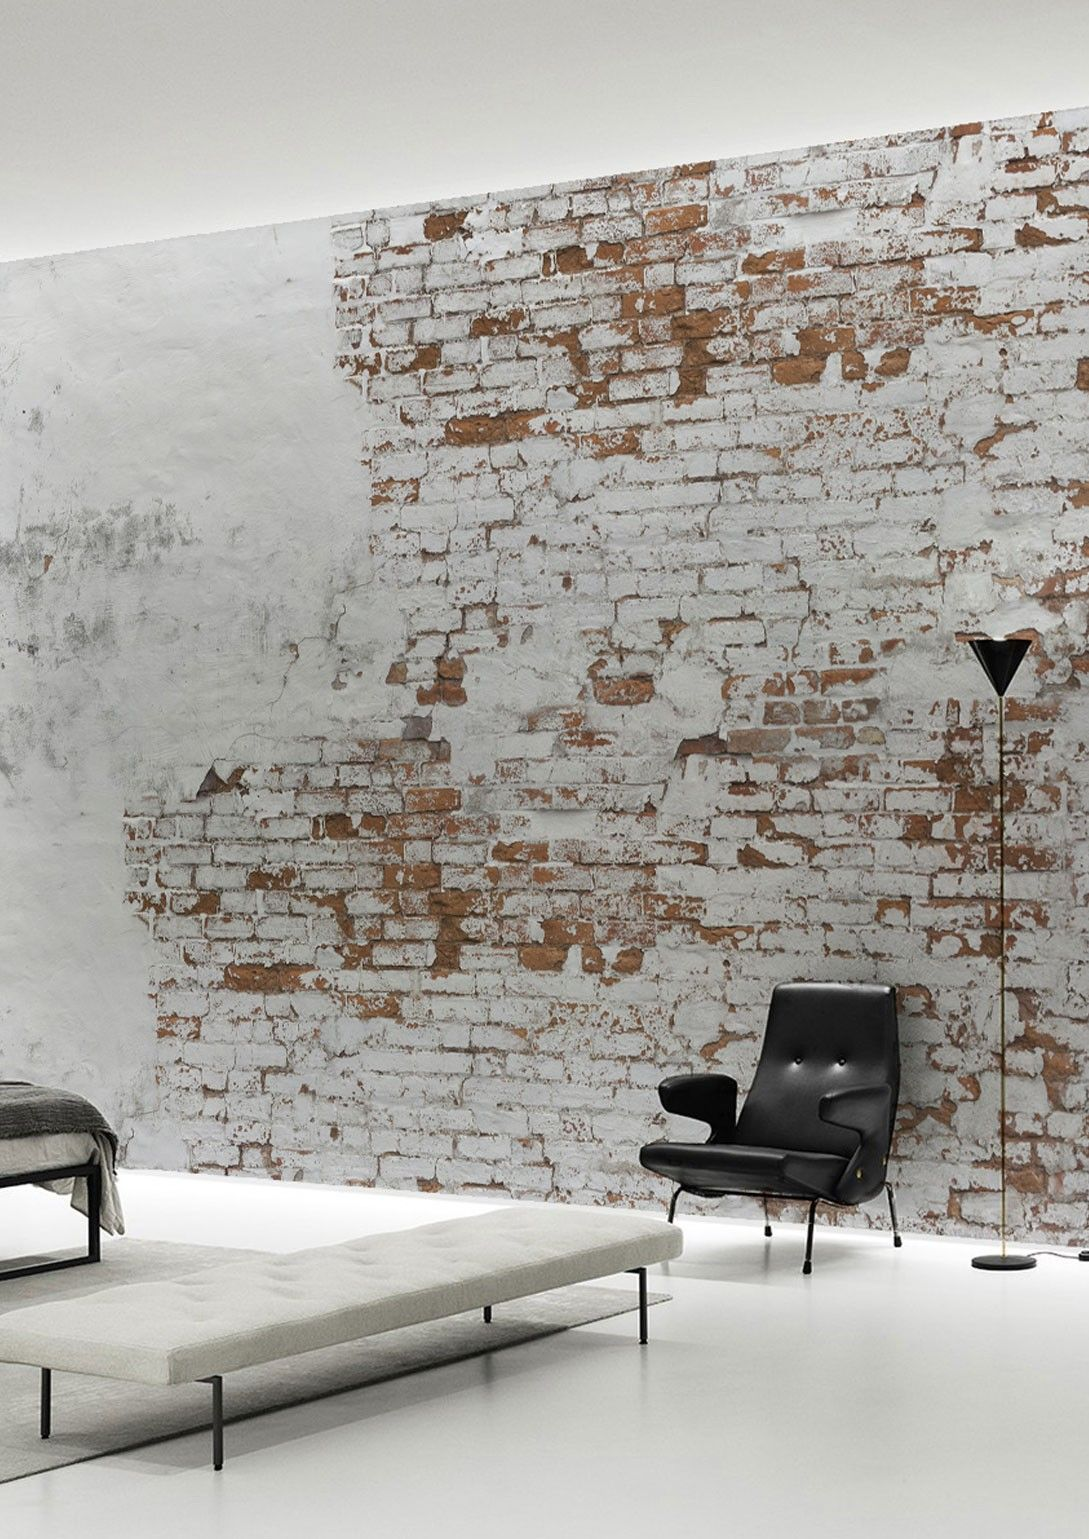 create your own industrial wall in no time with this